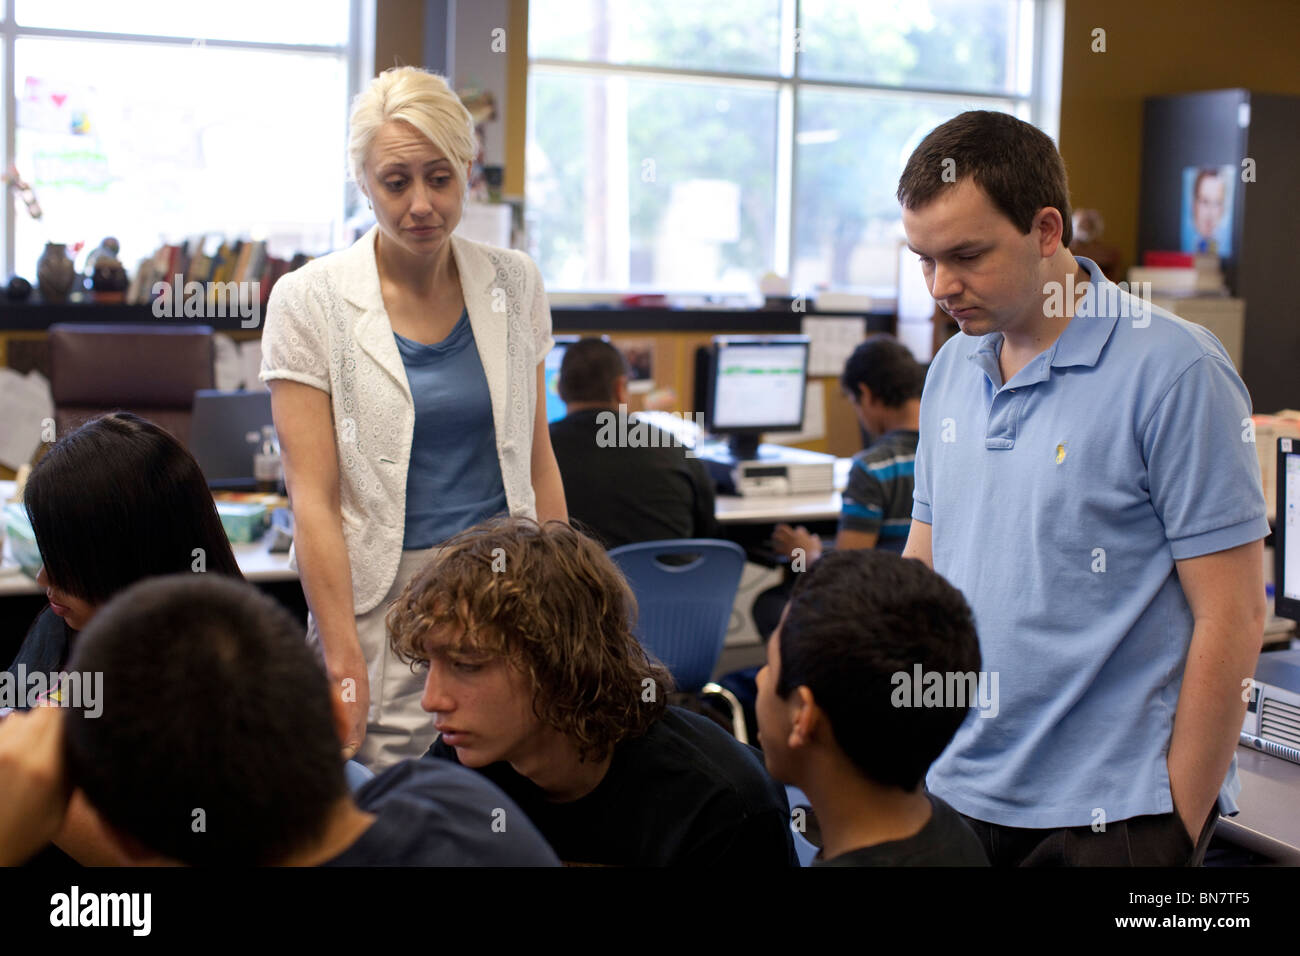 Anglo female and Angle male high school English teachers team-teach in large classroom Stock Photo